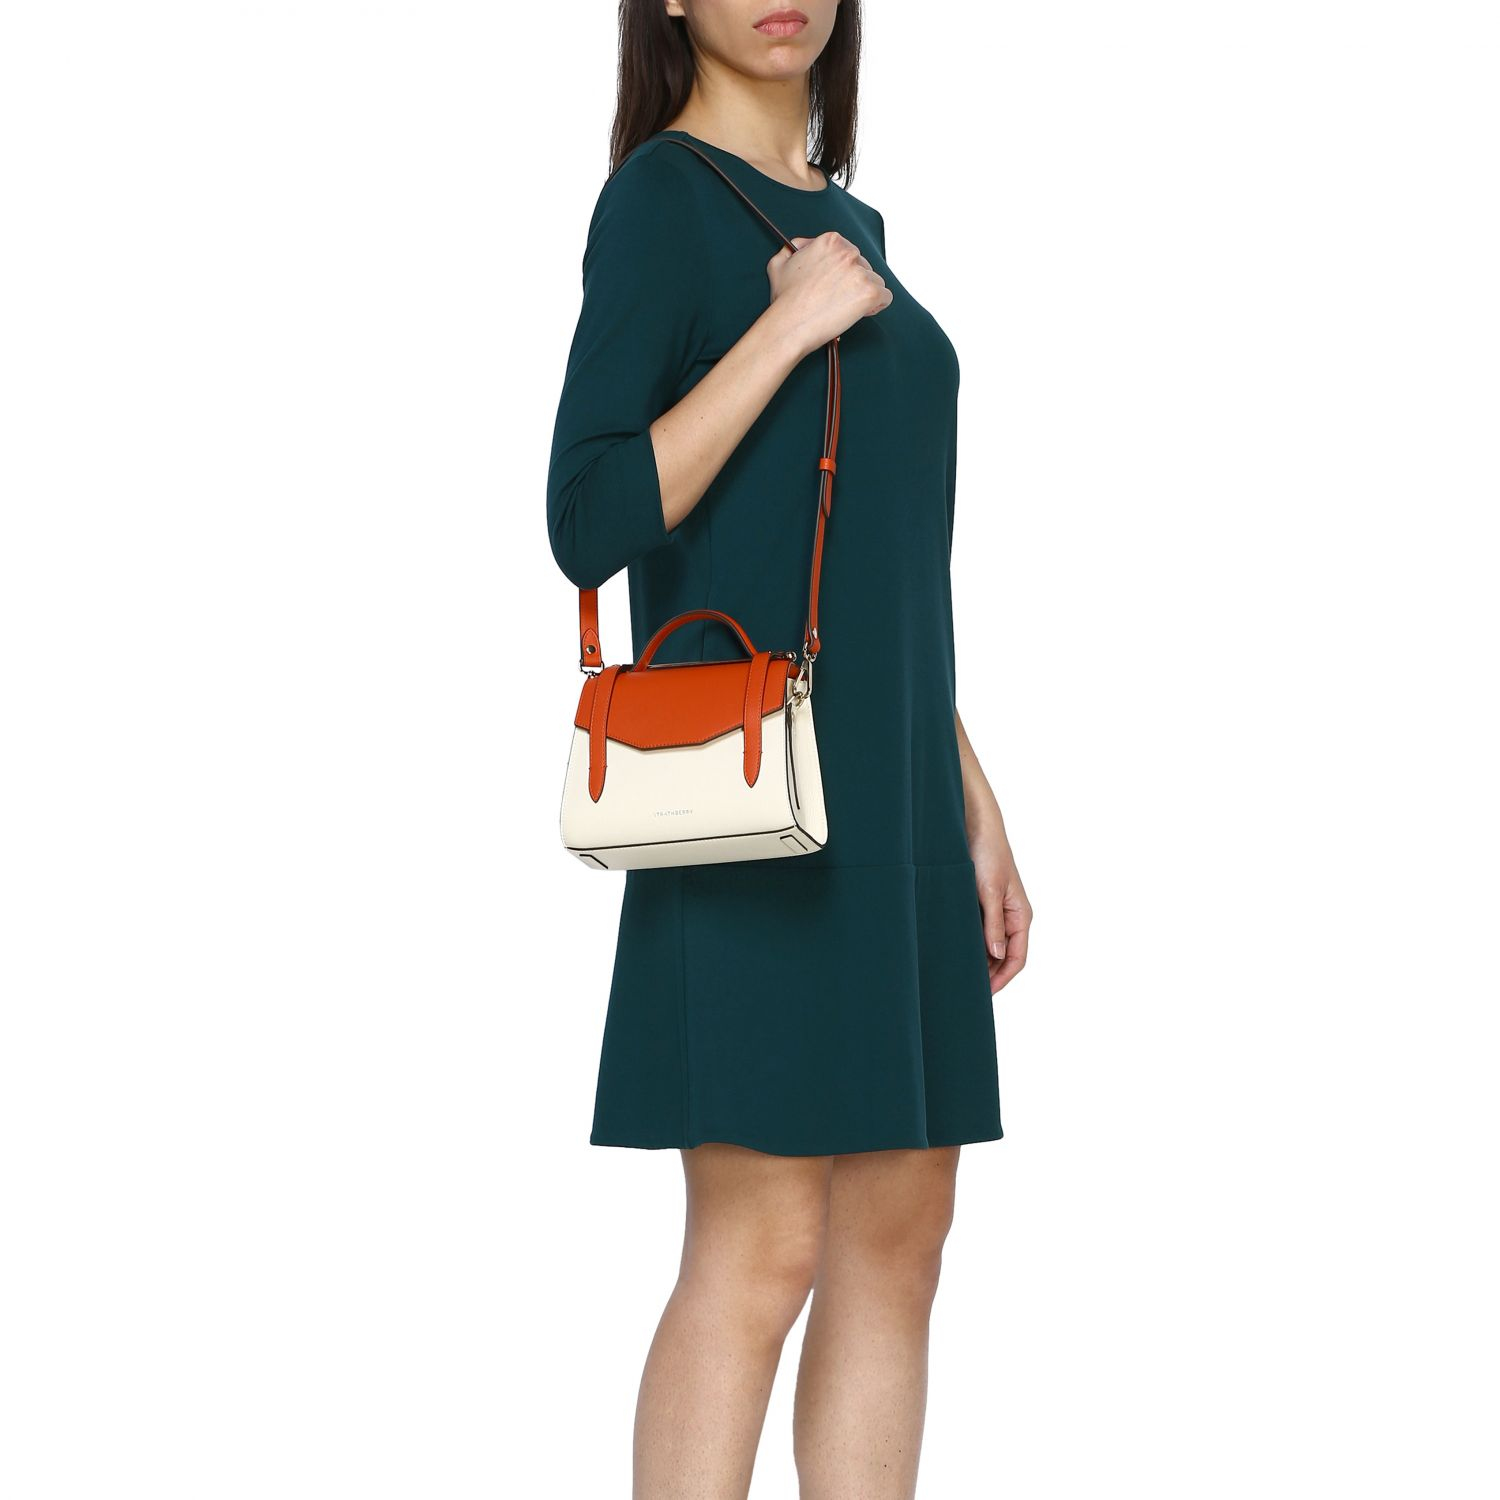 Shoulder bag women Strathberry orange 2